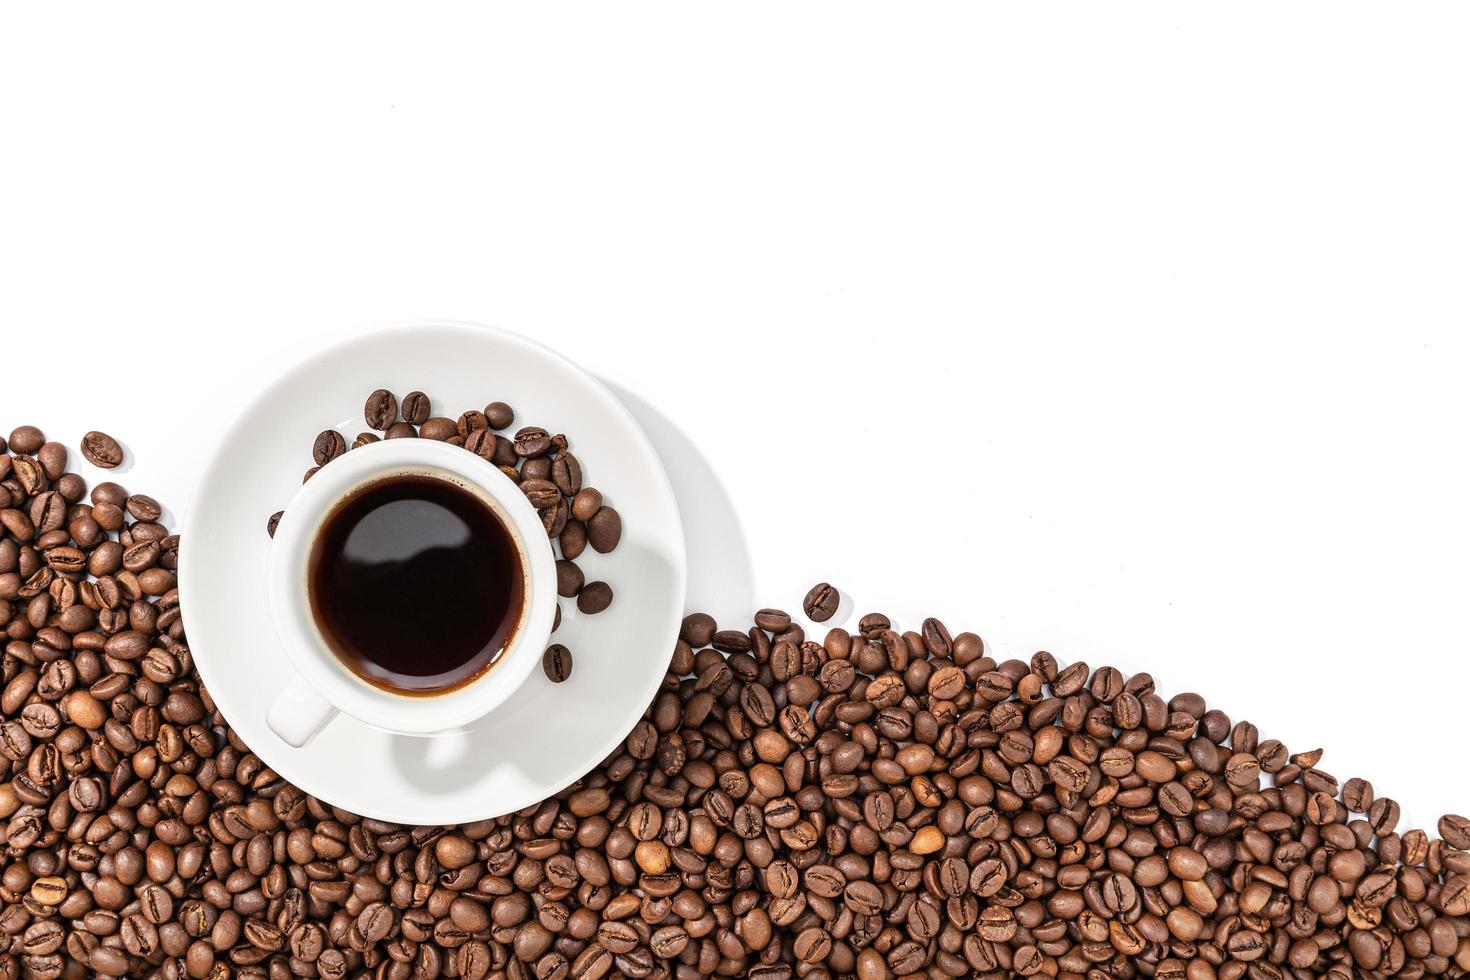 Cup of espresso coffee and roasted beans on white background photo